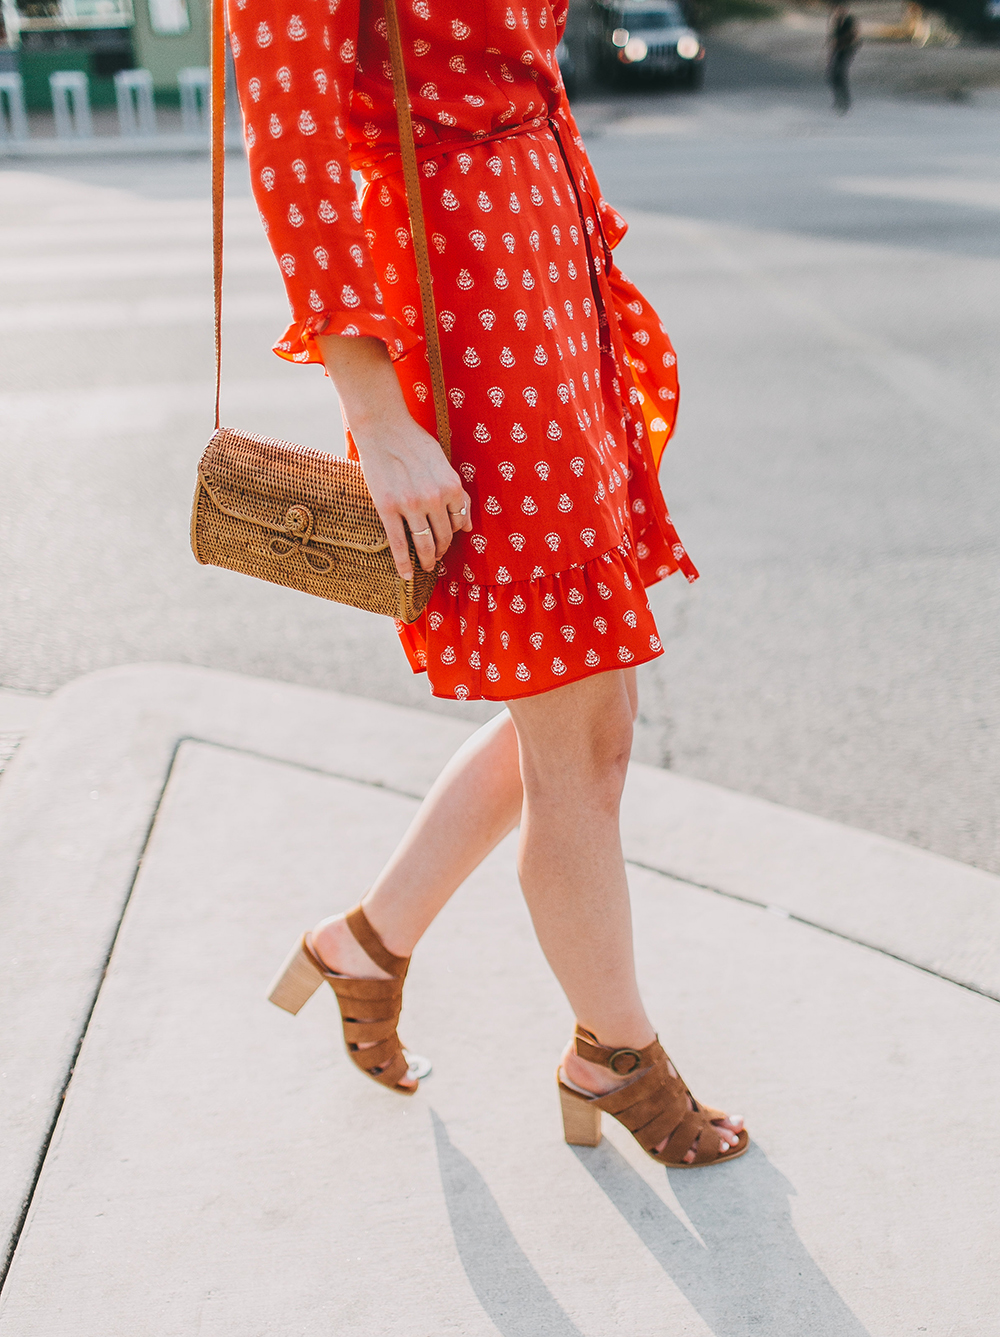 livvyland-blog-olivia-watson-sezane-wrap-dress-date-night-work-outfit-idea-poppy-red-olivia-watson-austin-texas-fashion-lifestyle-blogger-7